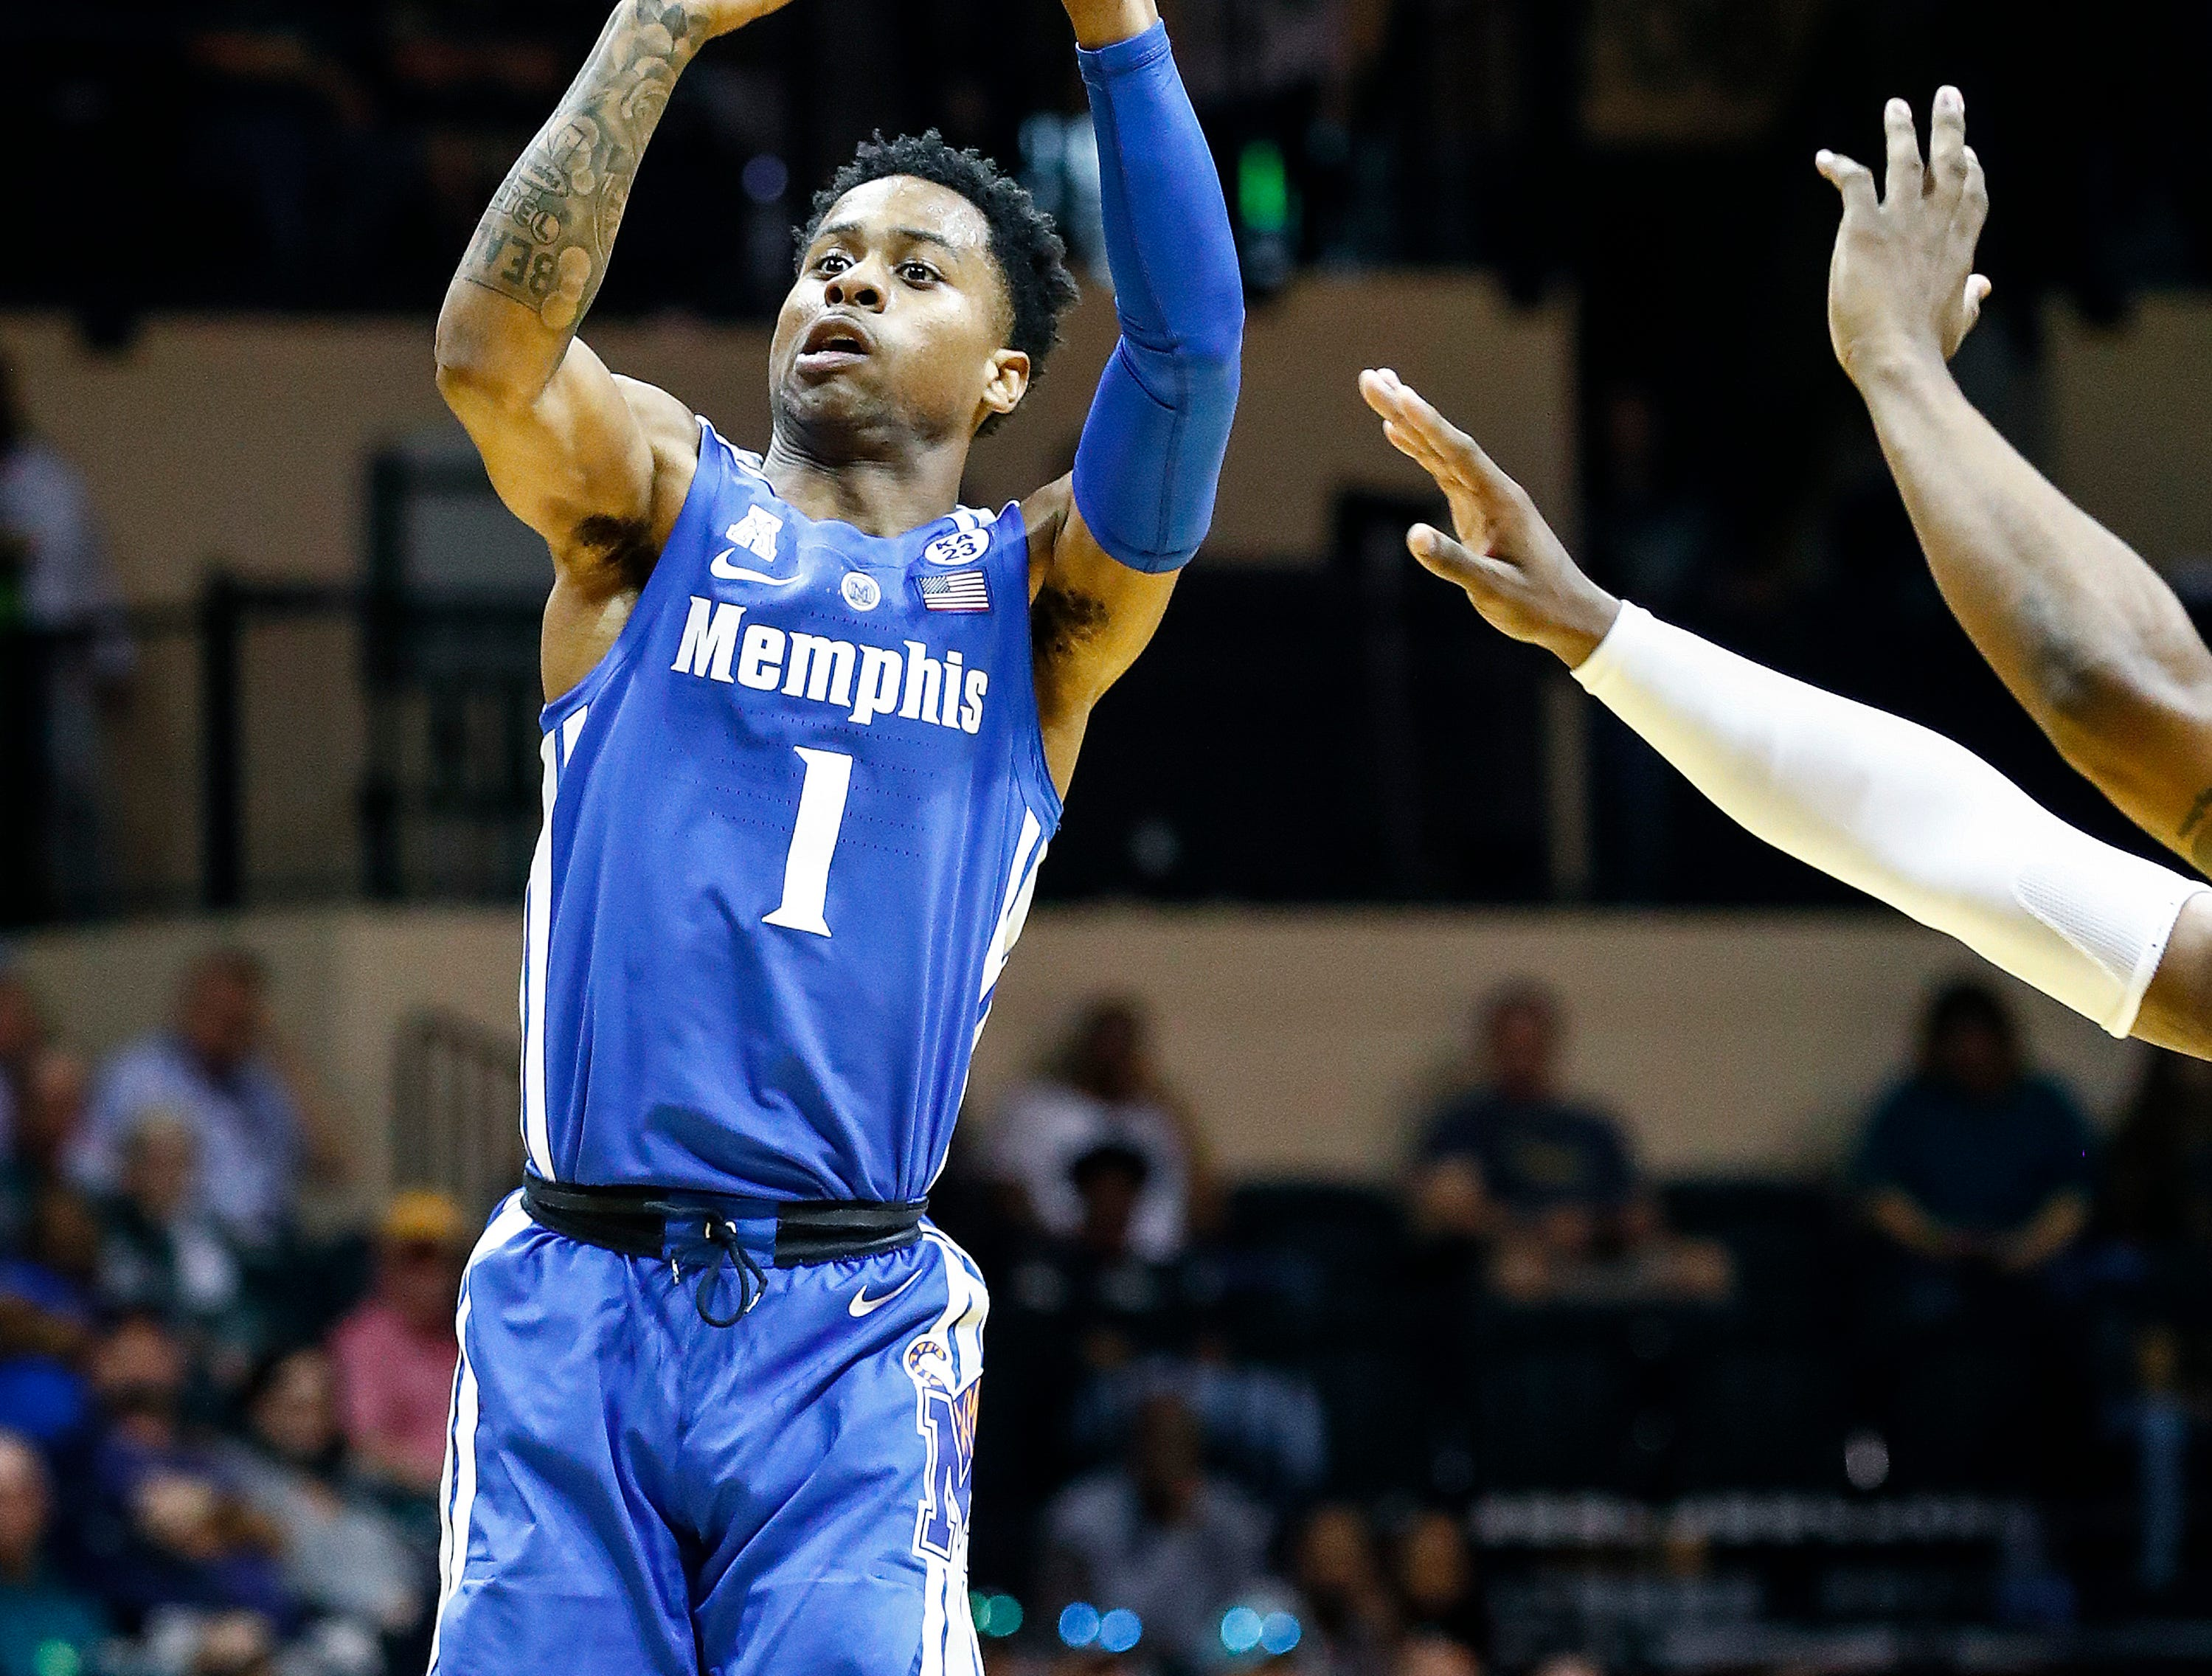 Memphis guard Tyler Harris puts up a 3-pointer against the USF defense during action in Tampa, Saturday, February 2, 2019.